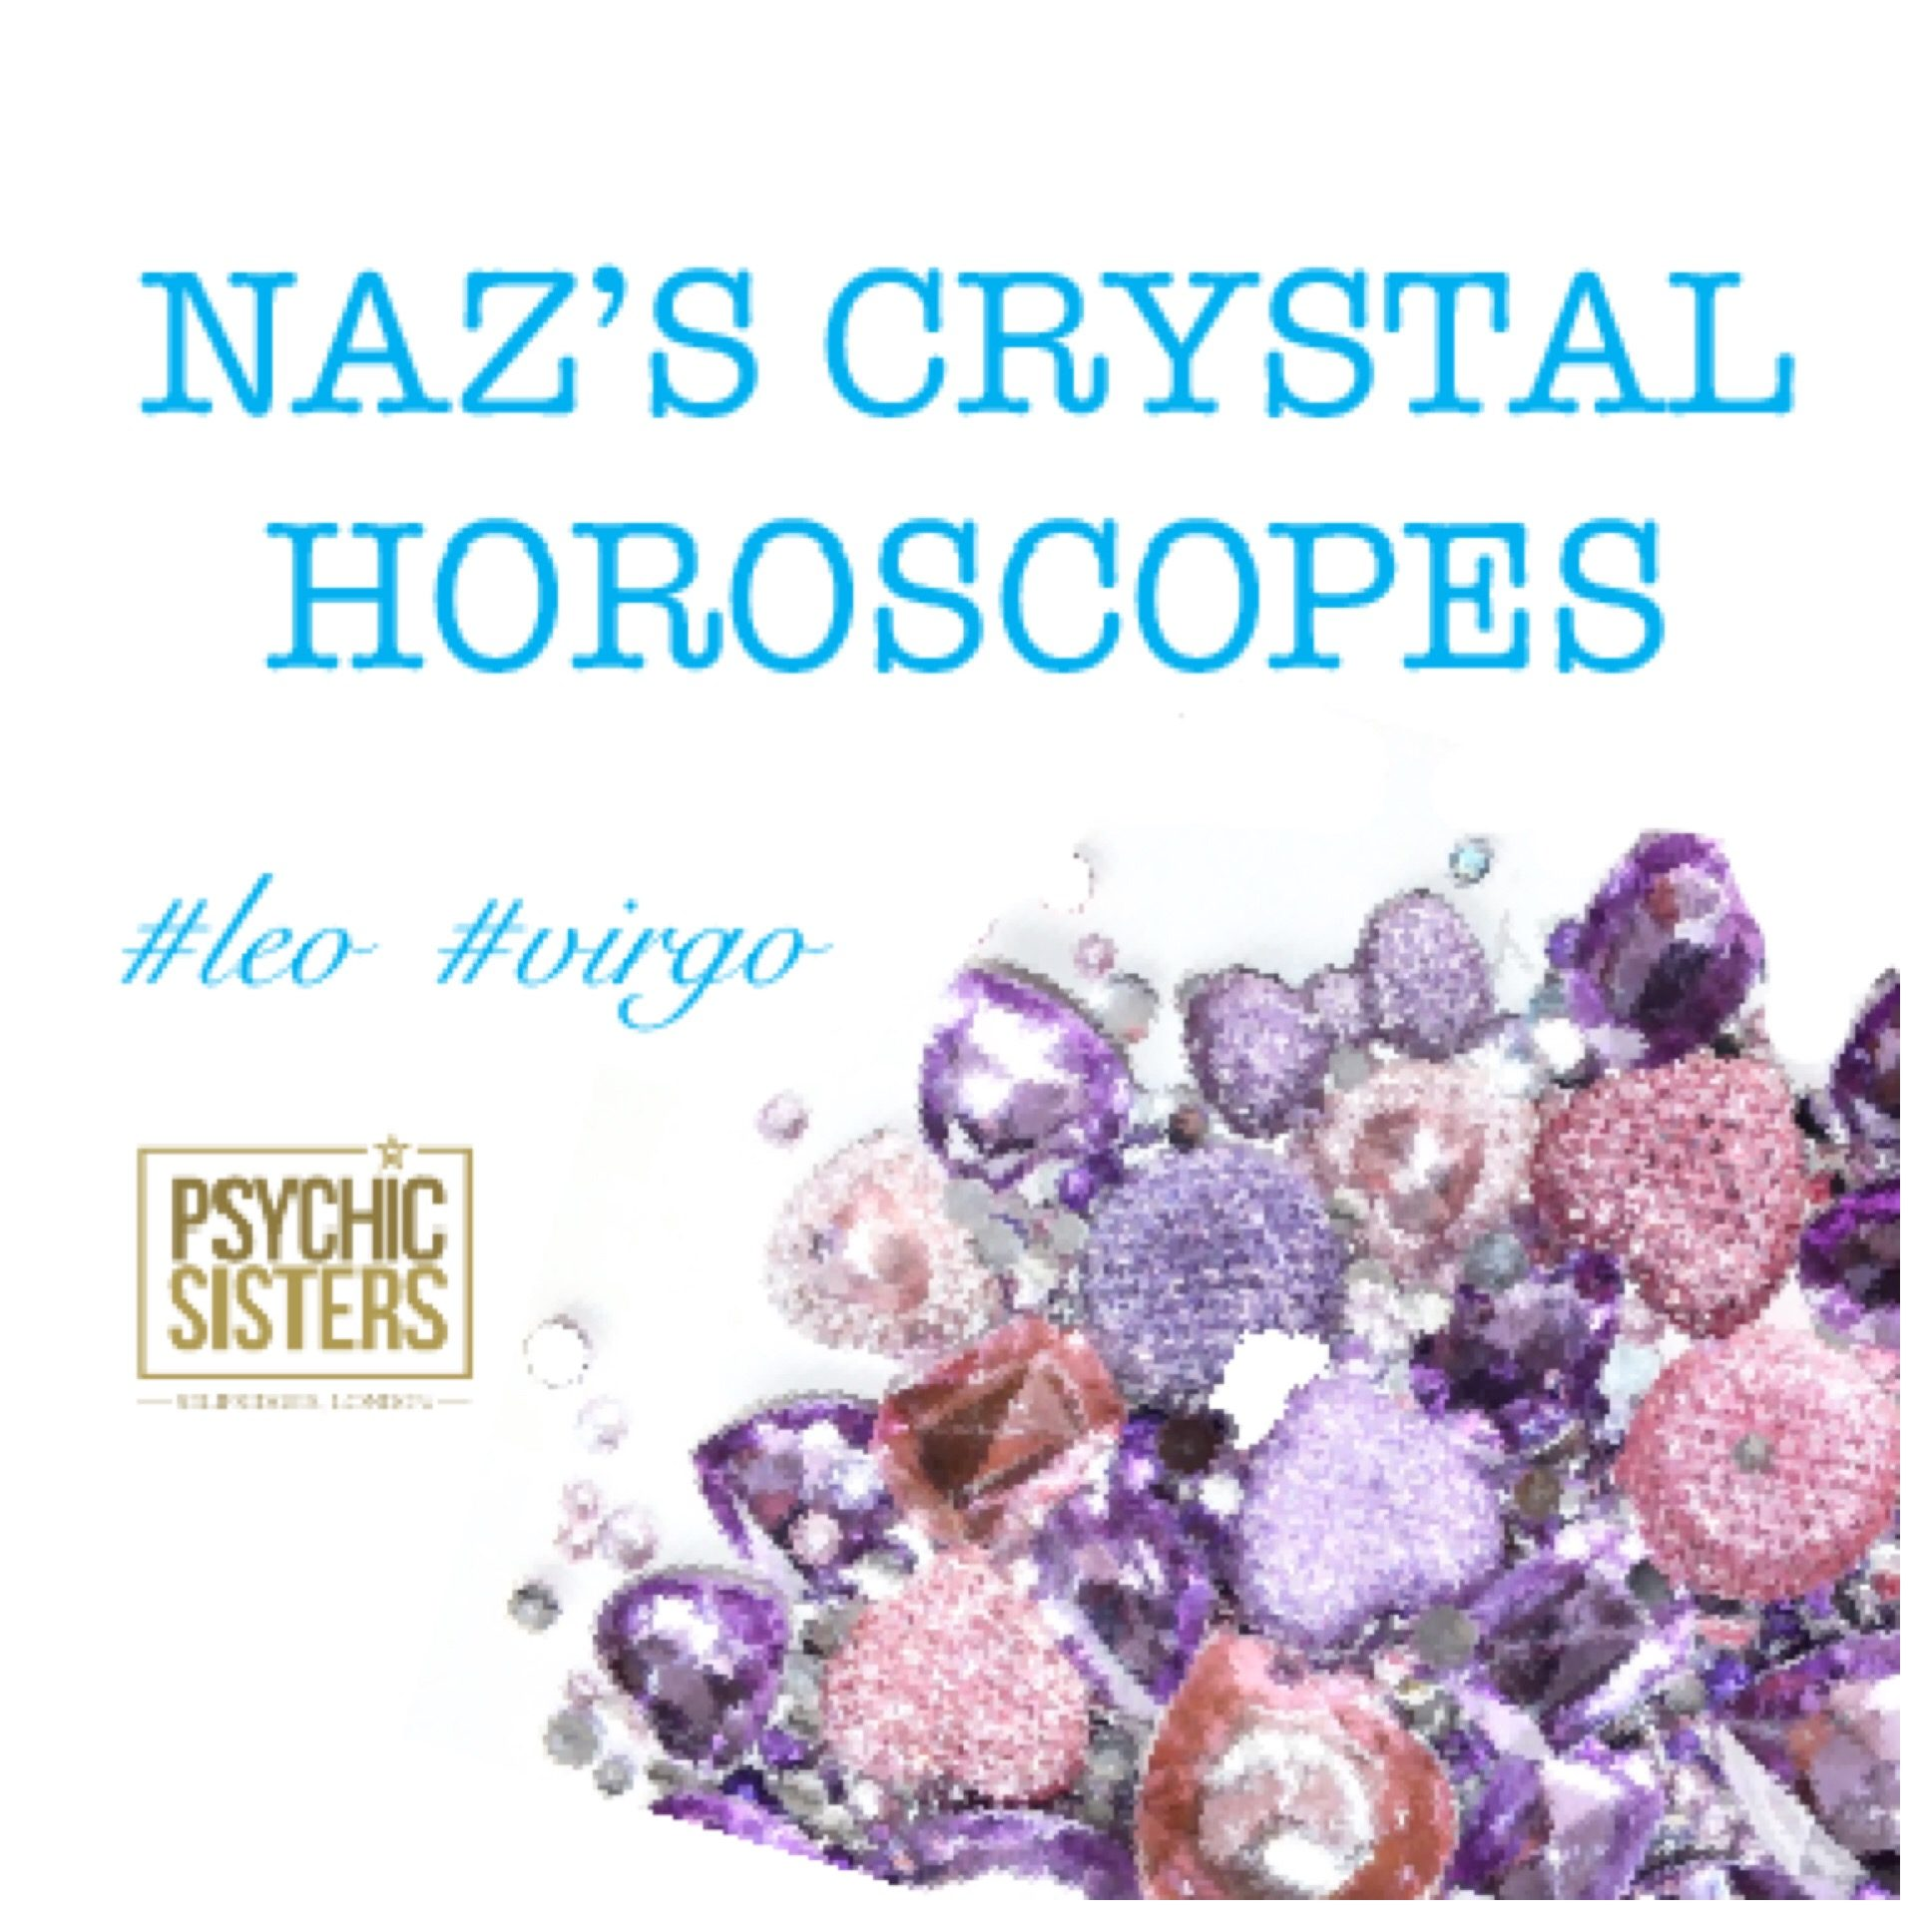 Naz's crystal horoscopes 18th - 24th February 2018